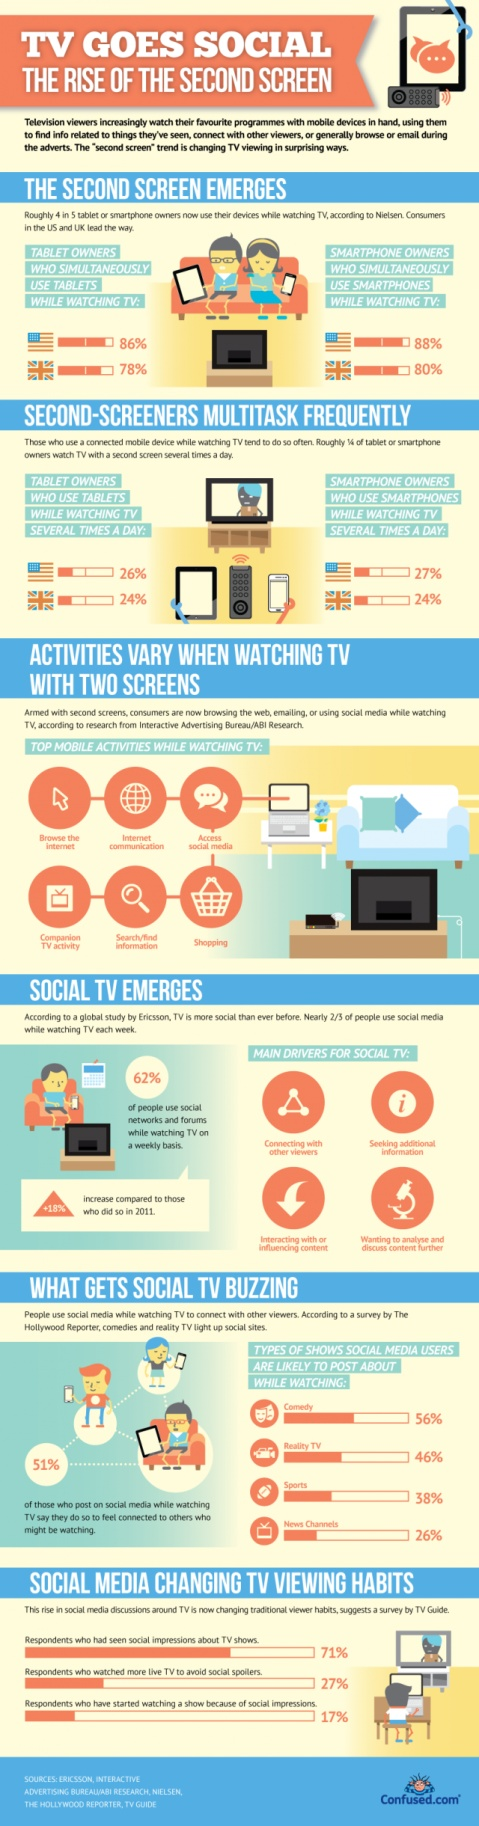 The Rise of the Second Screen. #Infographic